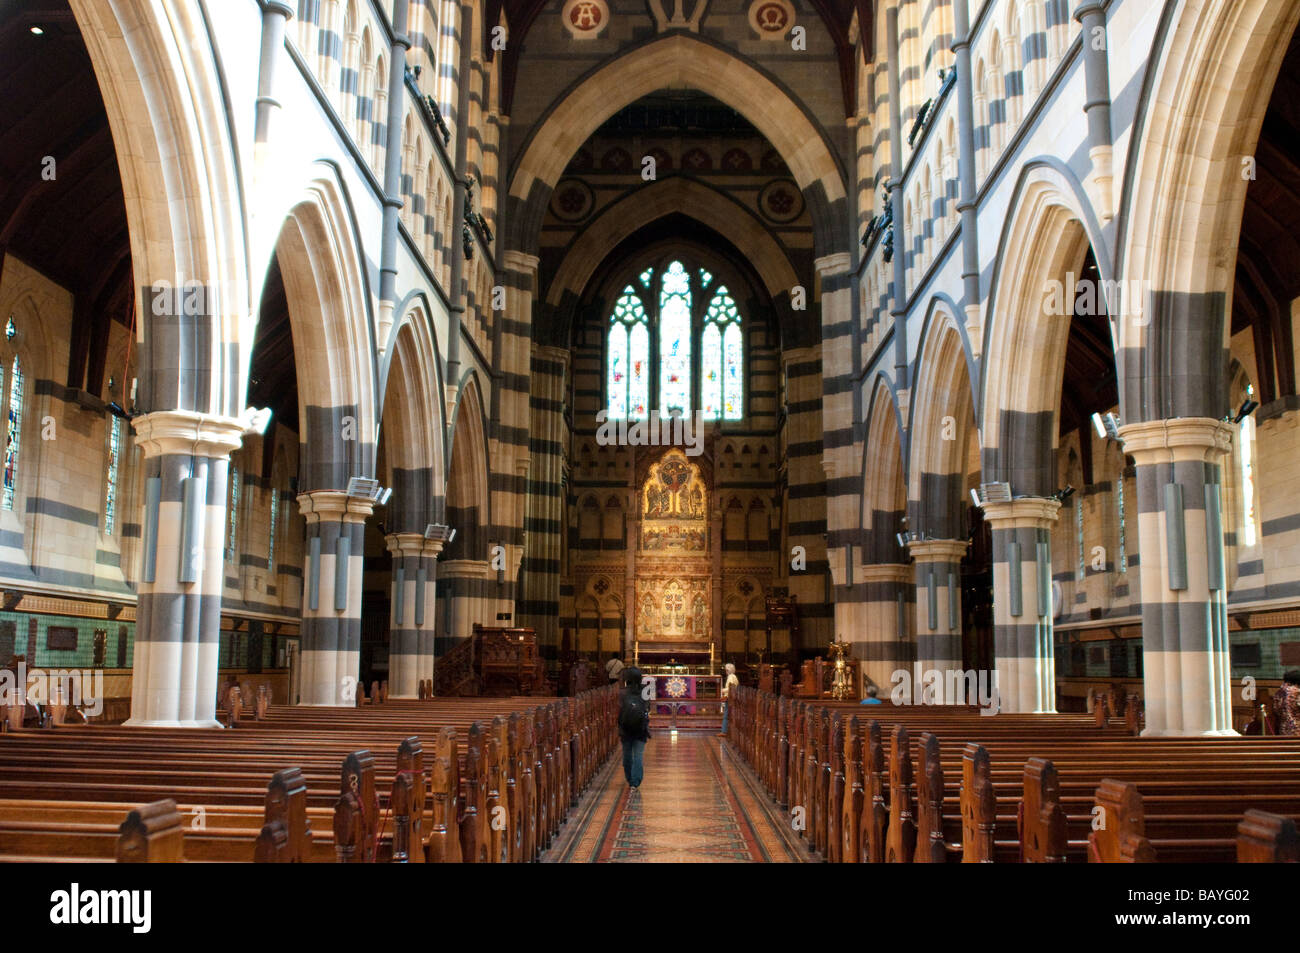 Interior Of St Pauls Cathedral Built In 1880s Gothic Revival Style Melbourne Victoria Australia